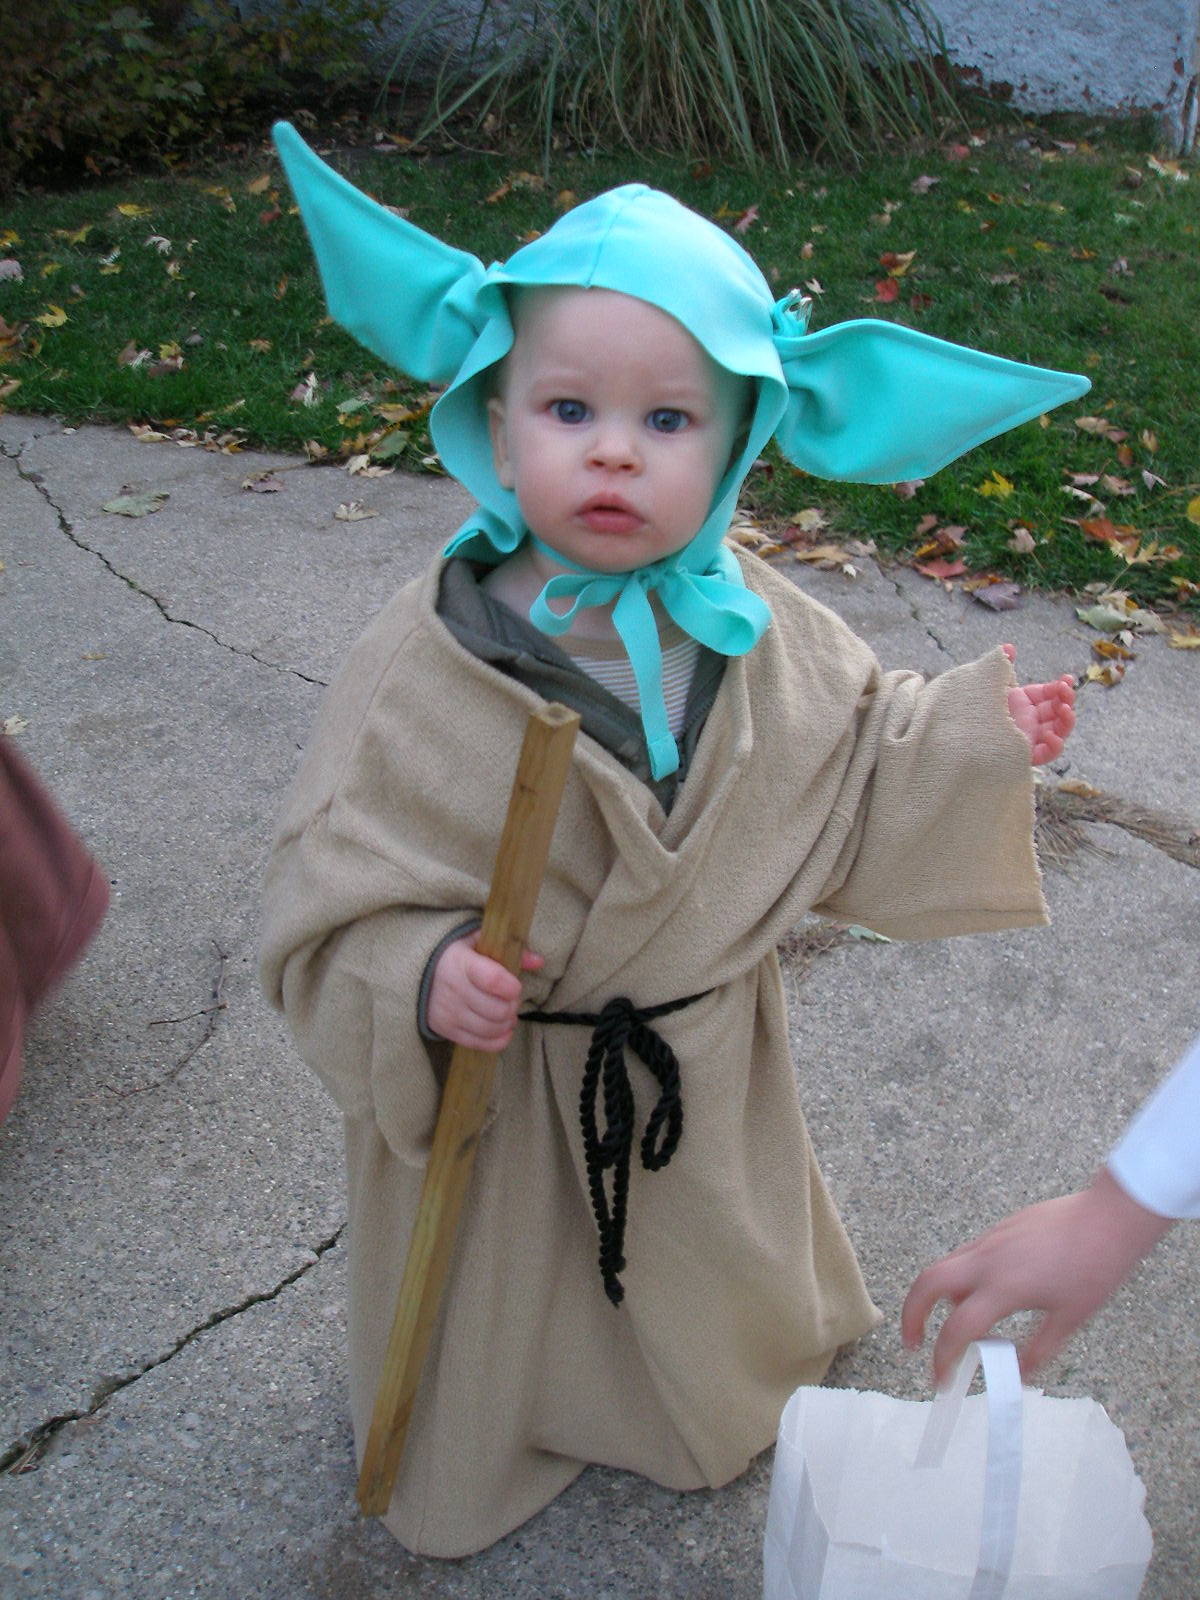 Super savings diy star wars costumes baby yoda princess leia diy star wars costumes baby yoda princess leia mace windu and an ewok solutioingenieria Gallery